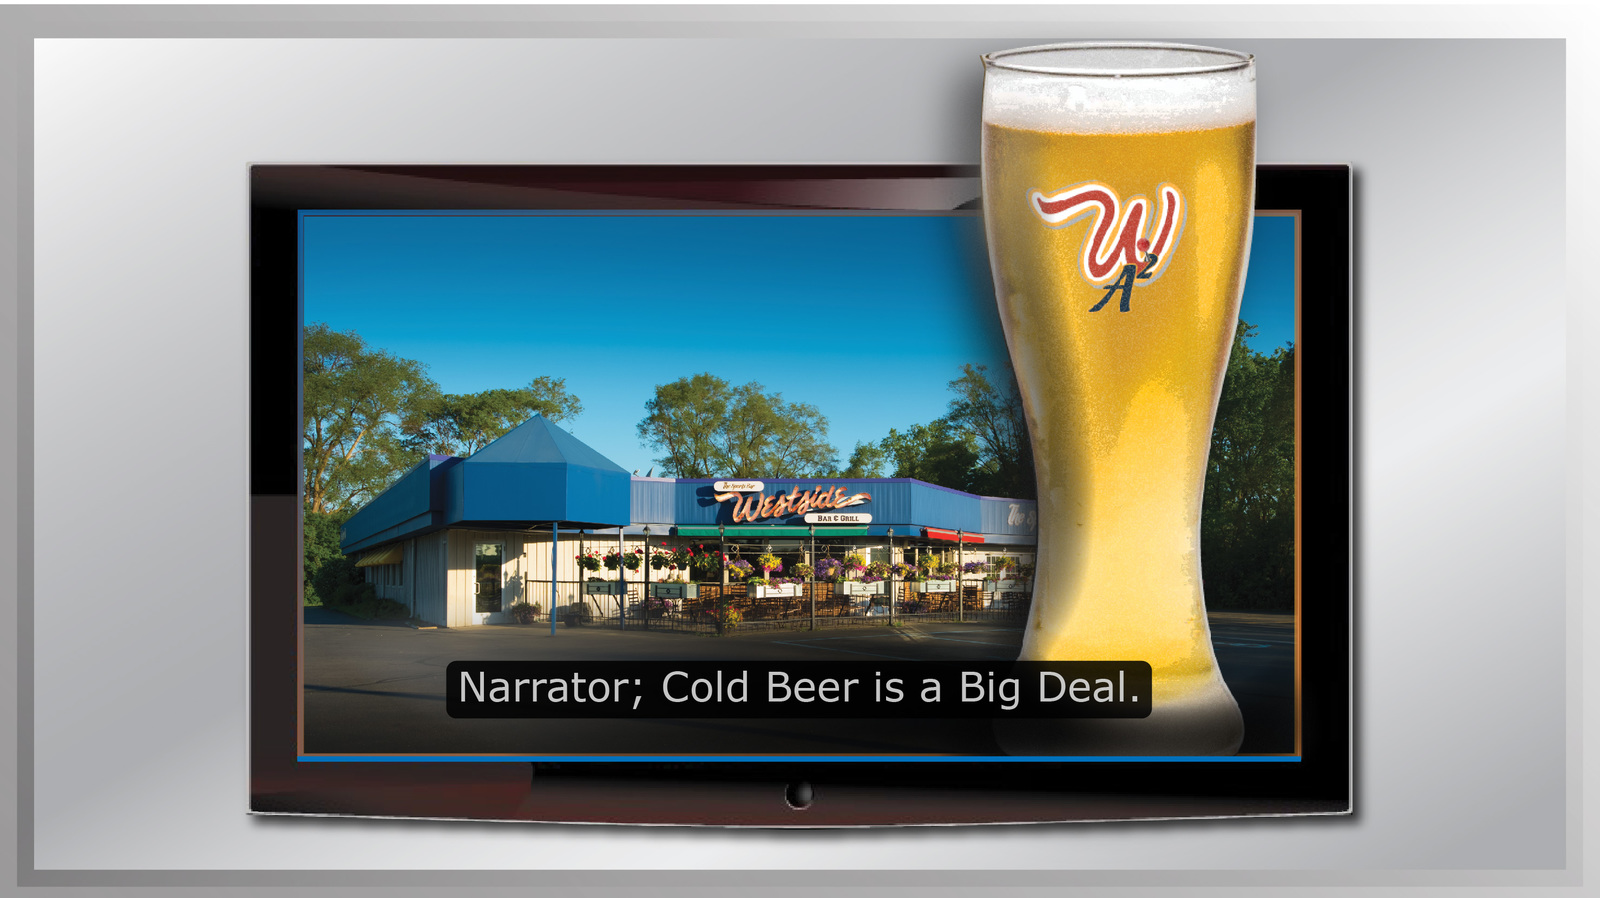 Cold Beer is a Big Deal!